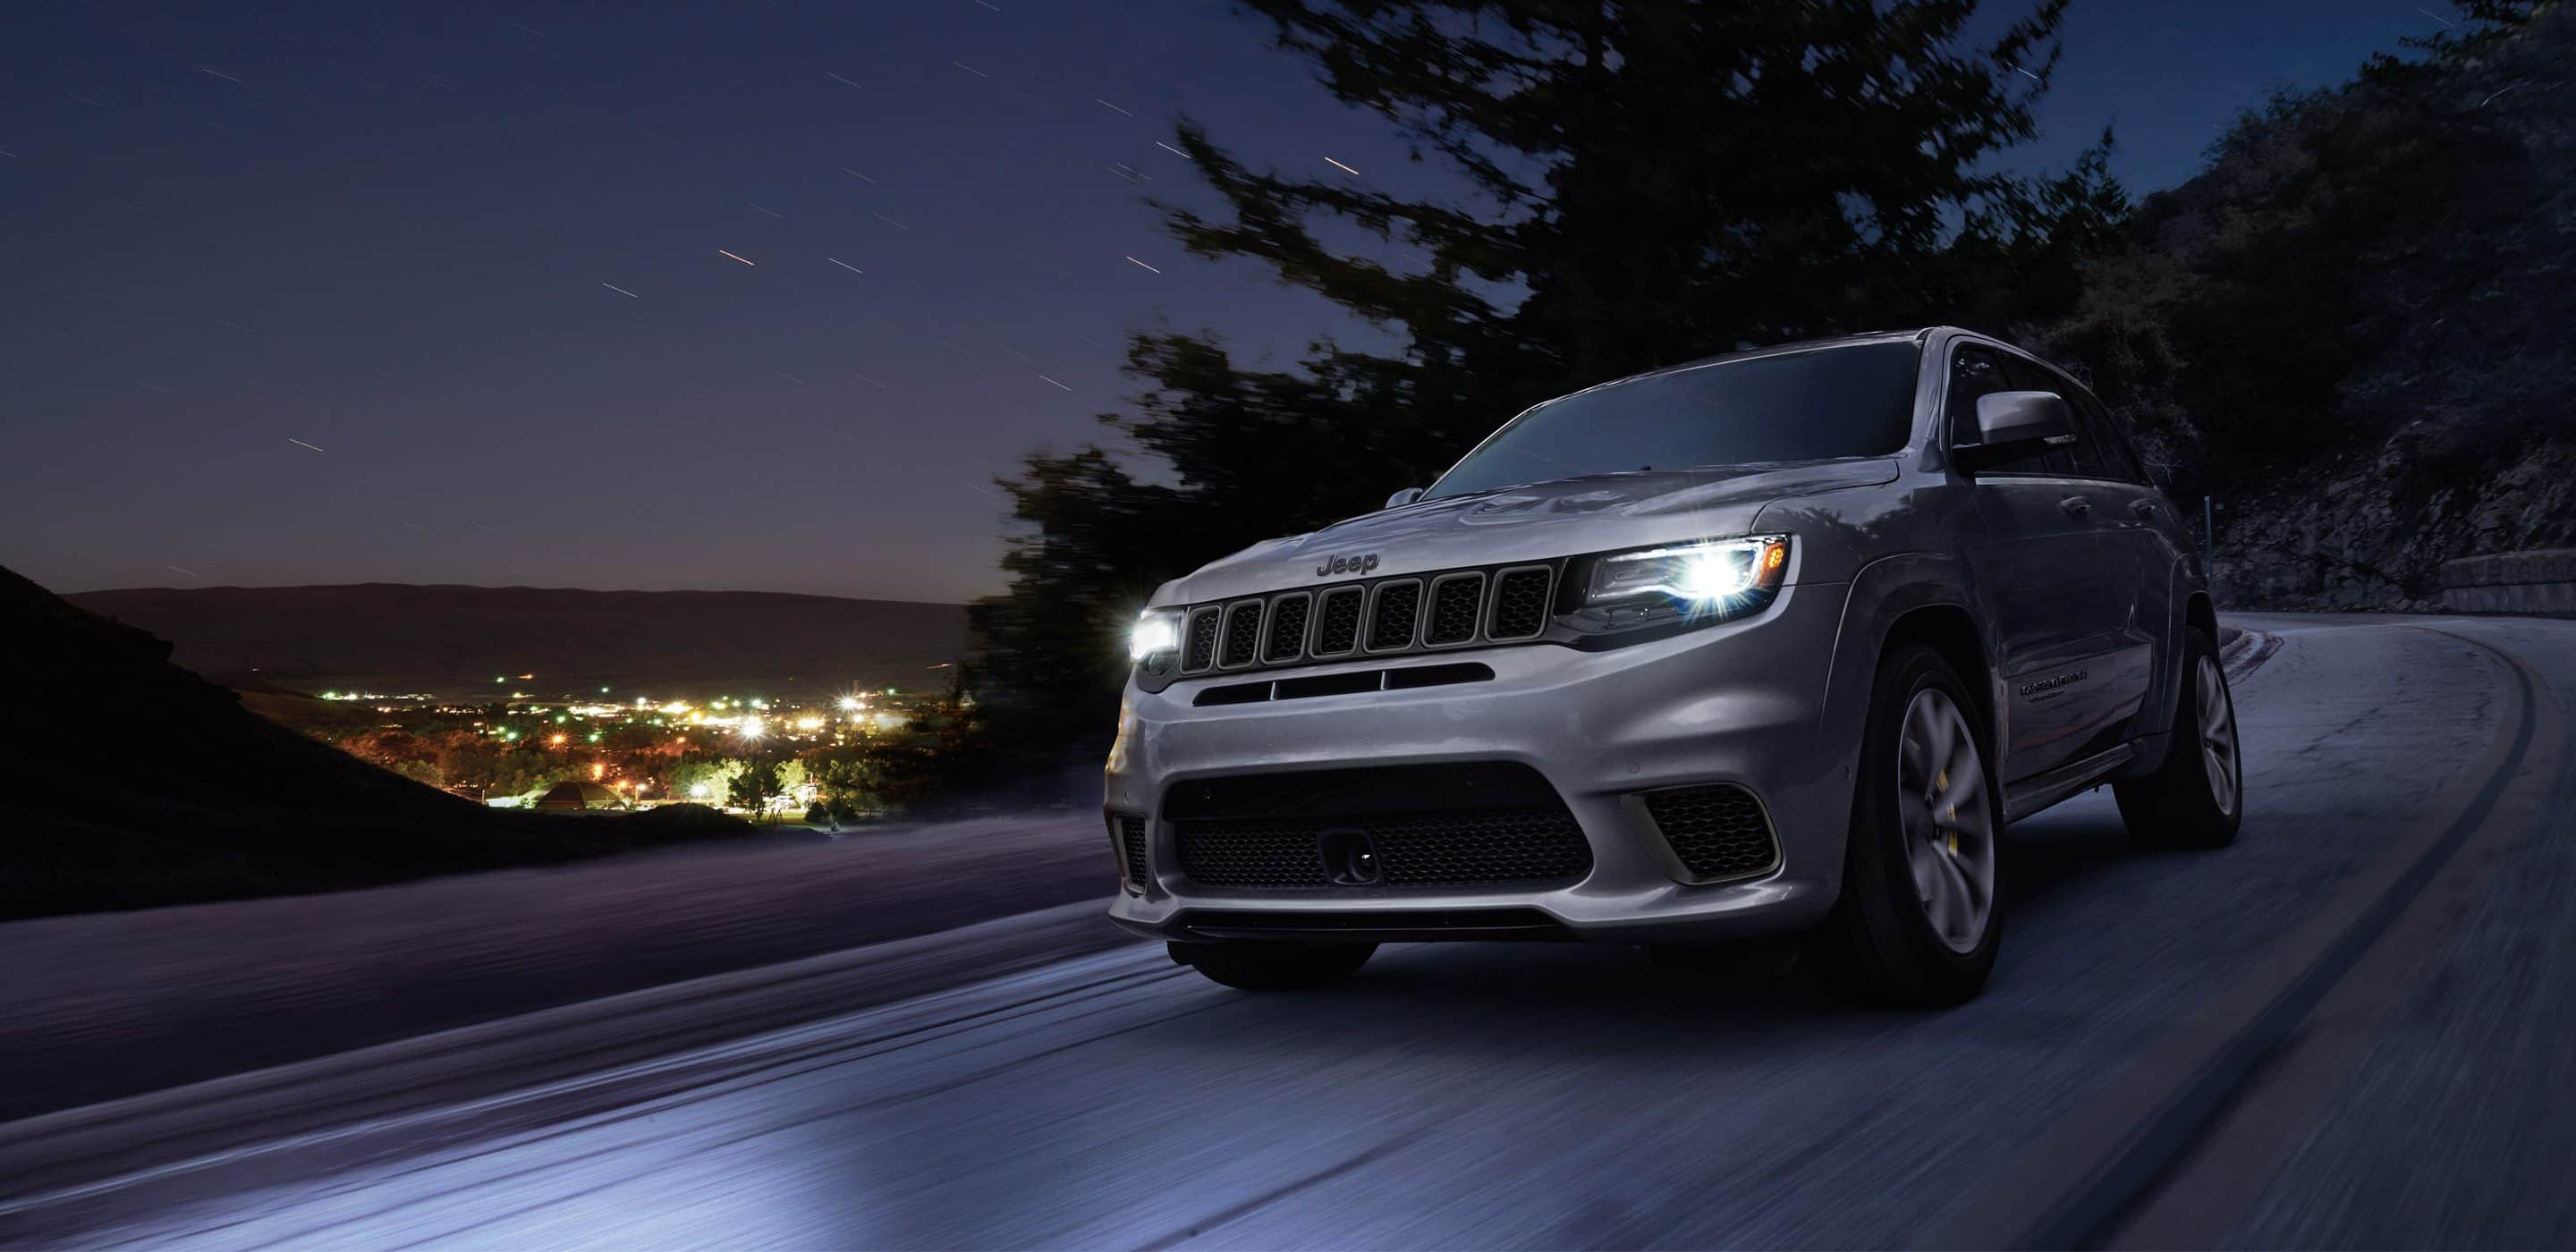 parkway leasecosts en of offers chrysler dealers near ram me mississauga dodge deals jeep canada